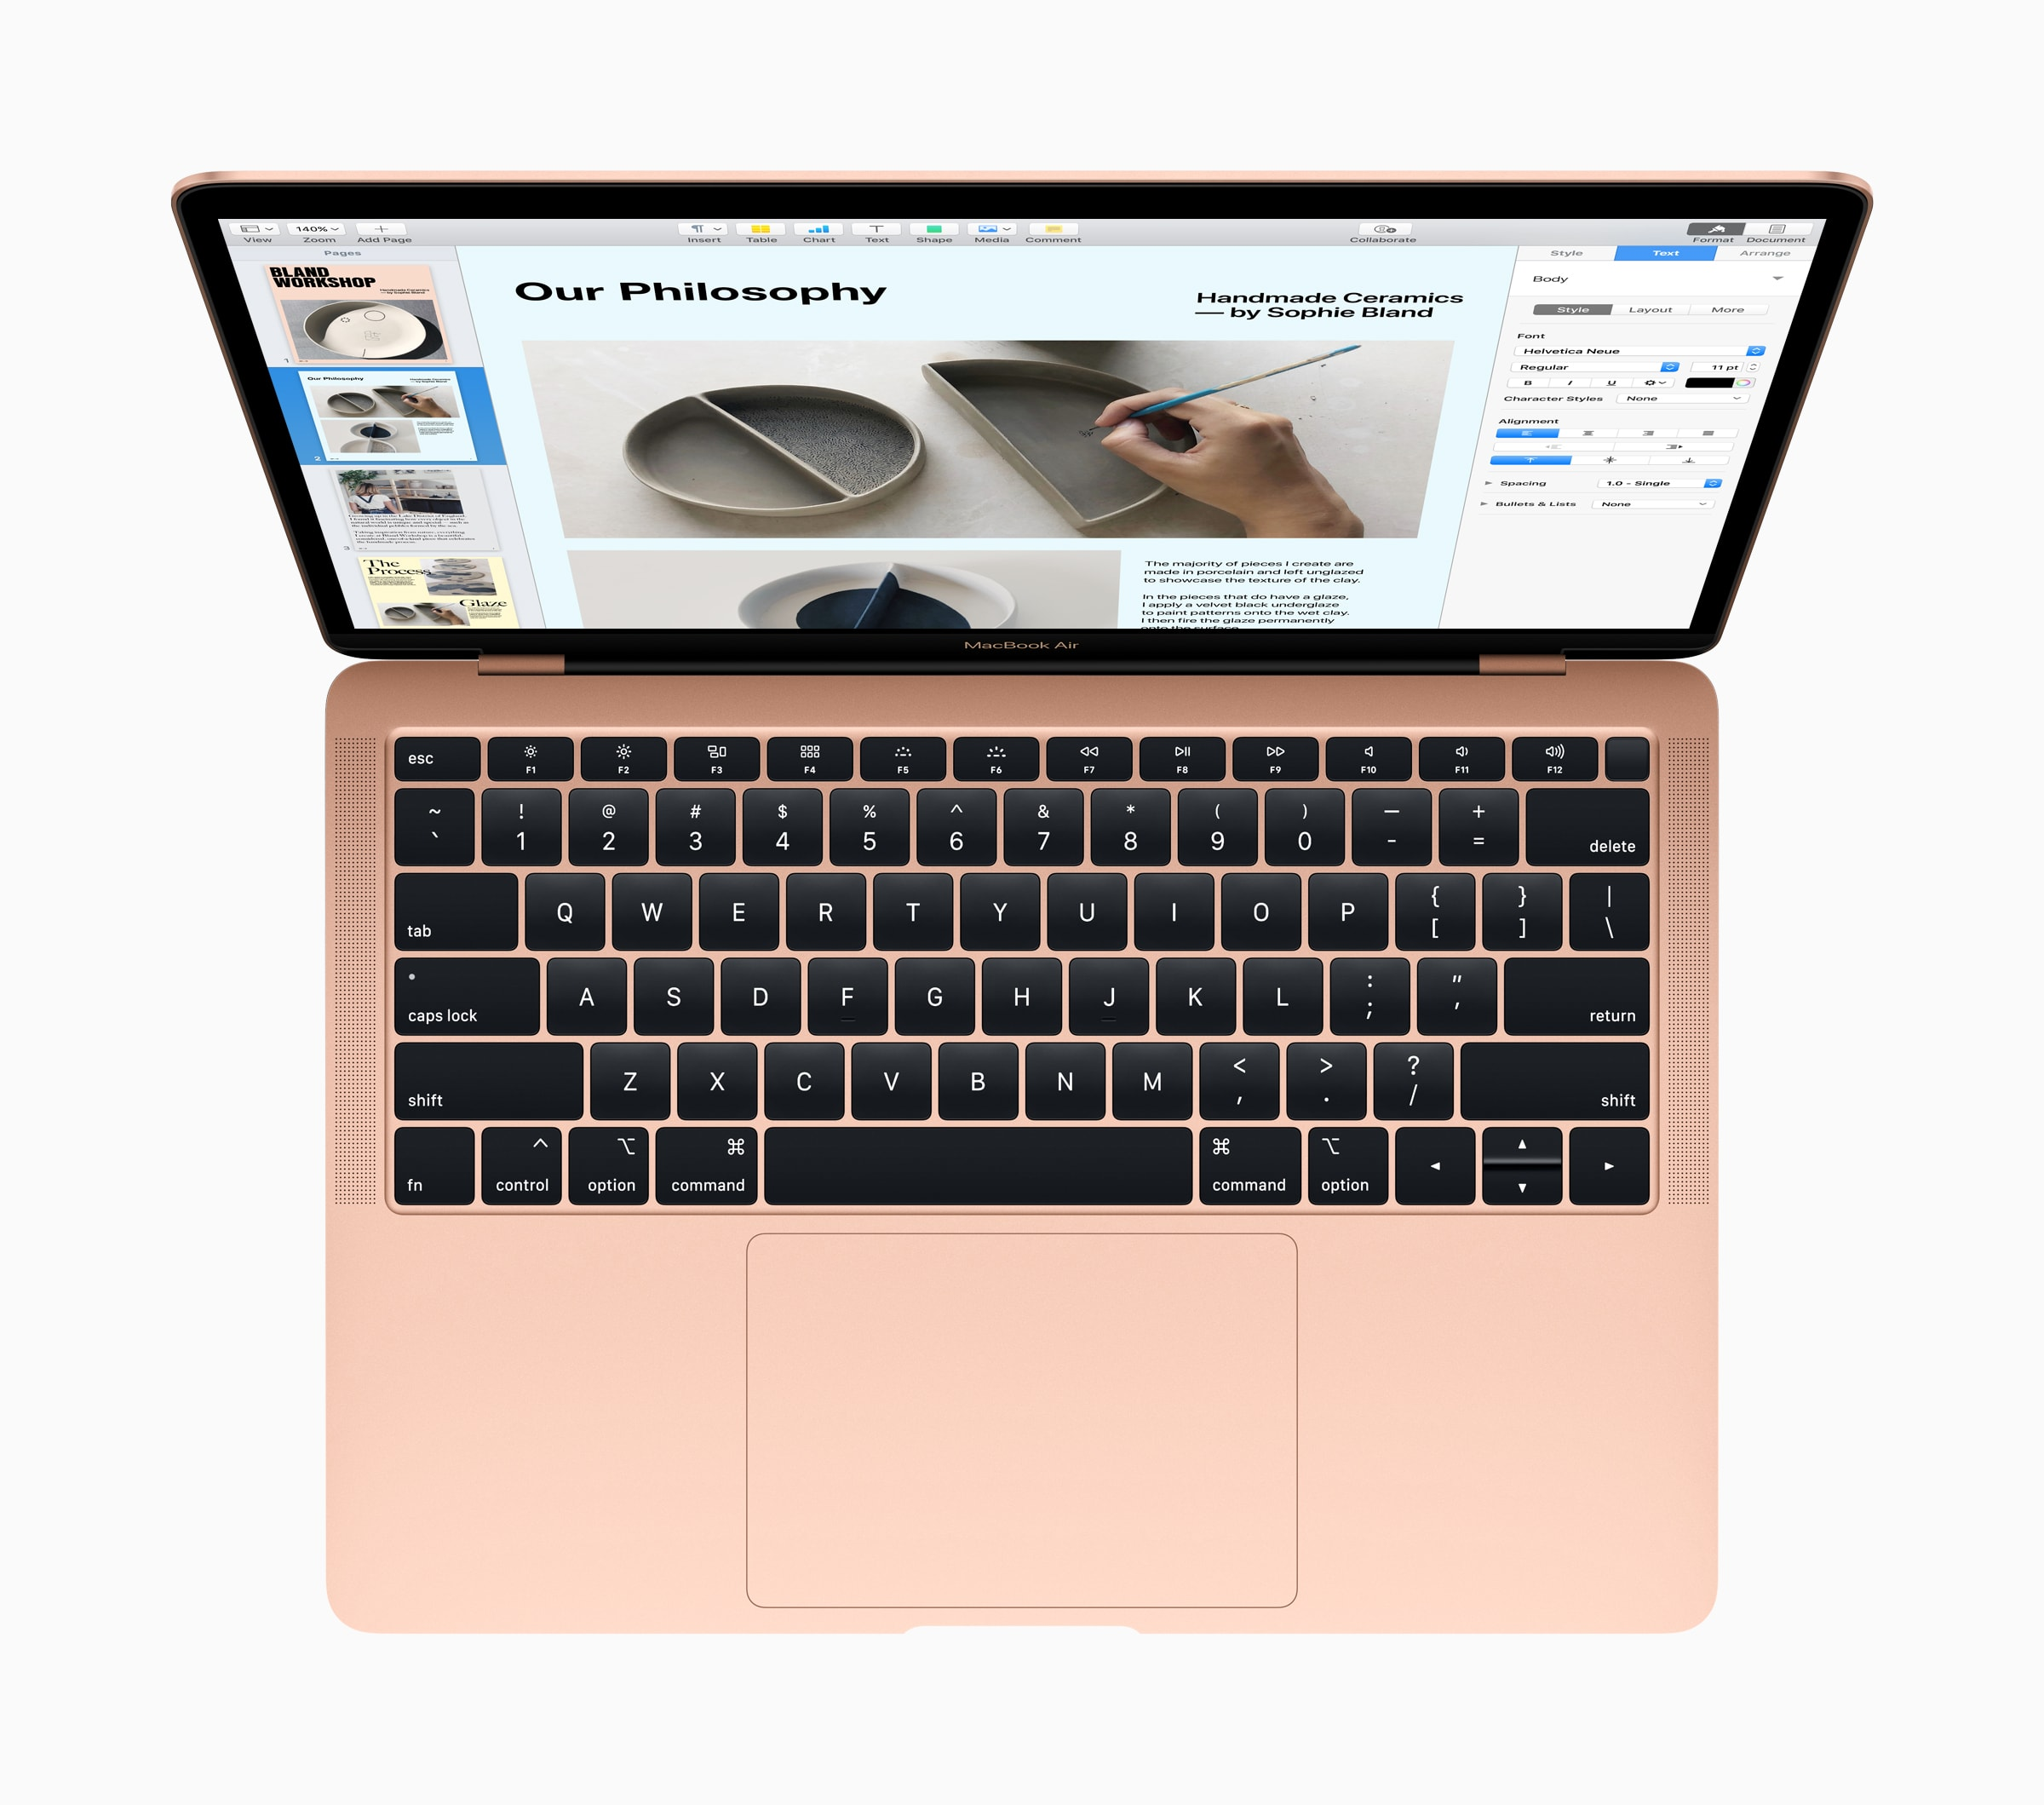 Why you must buy a Macbook Air over other laptops in 2019?